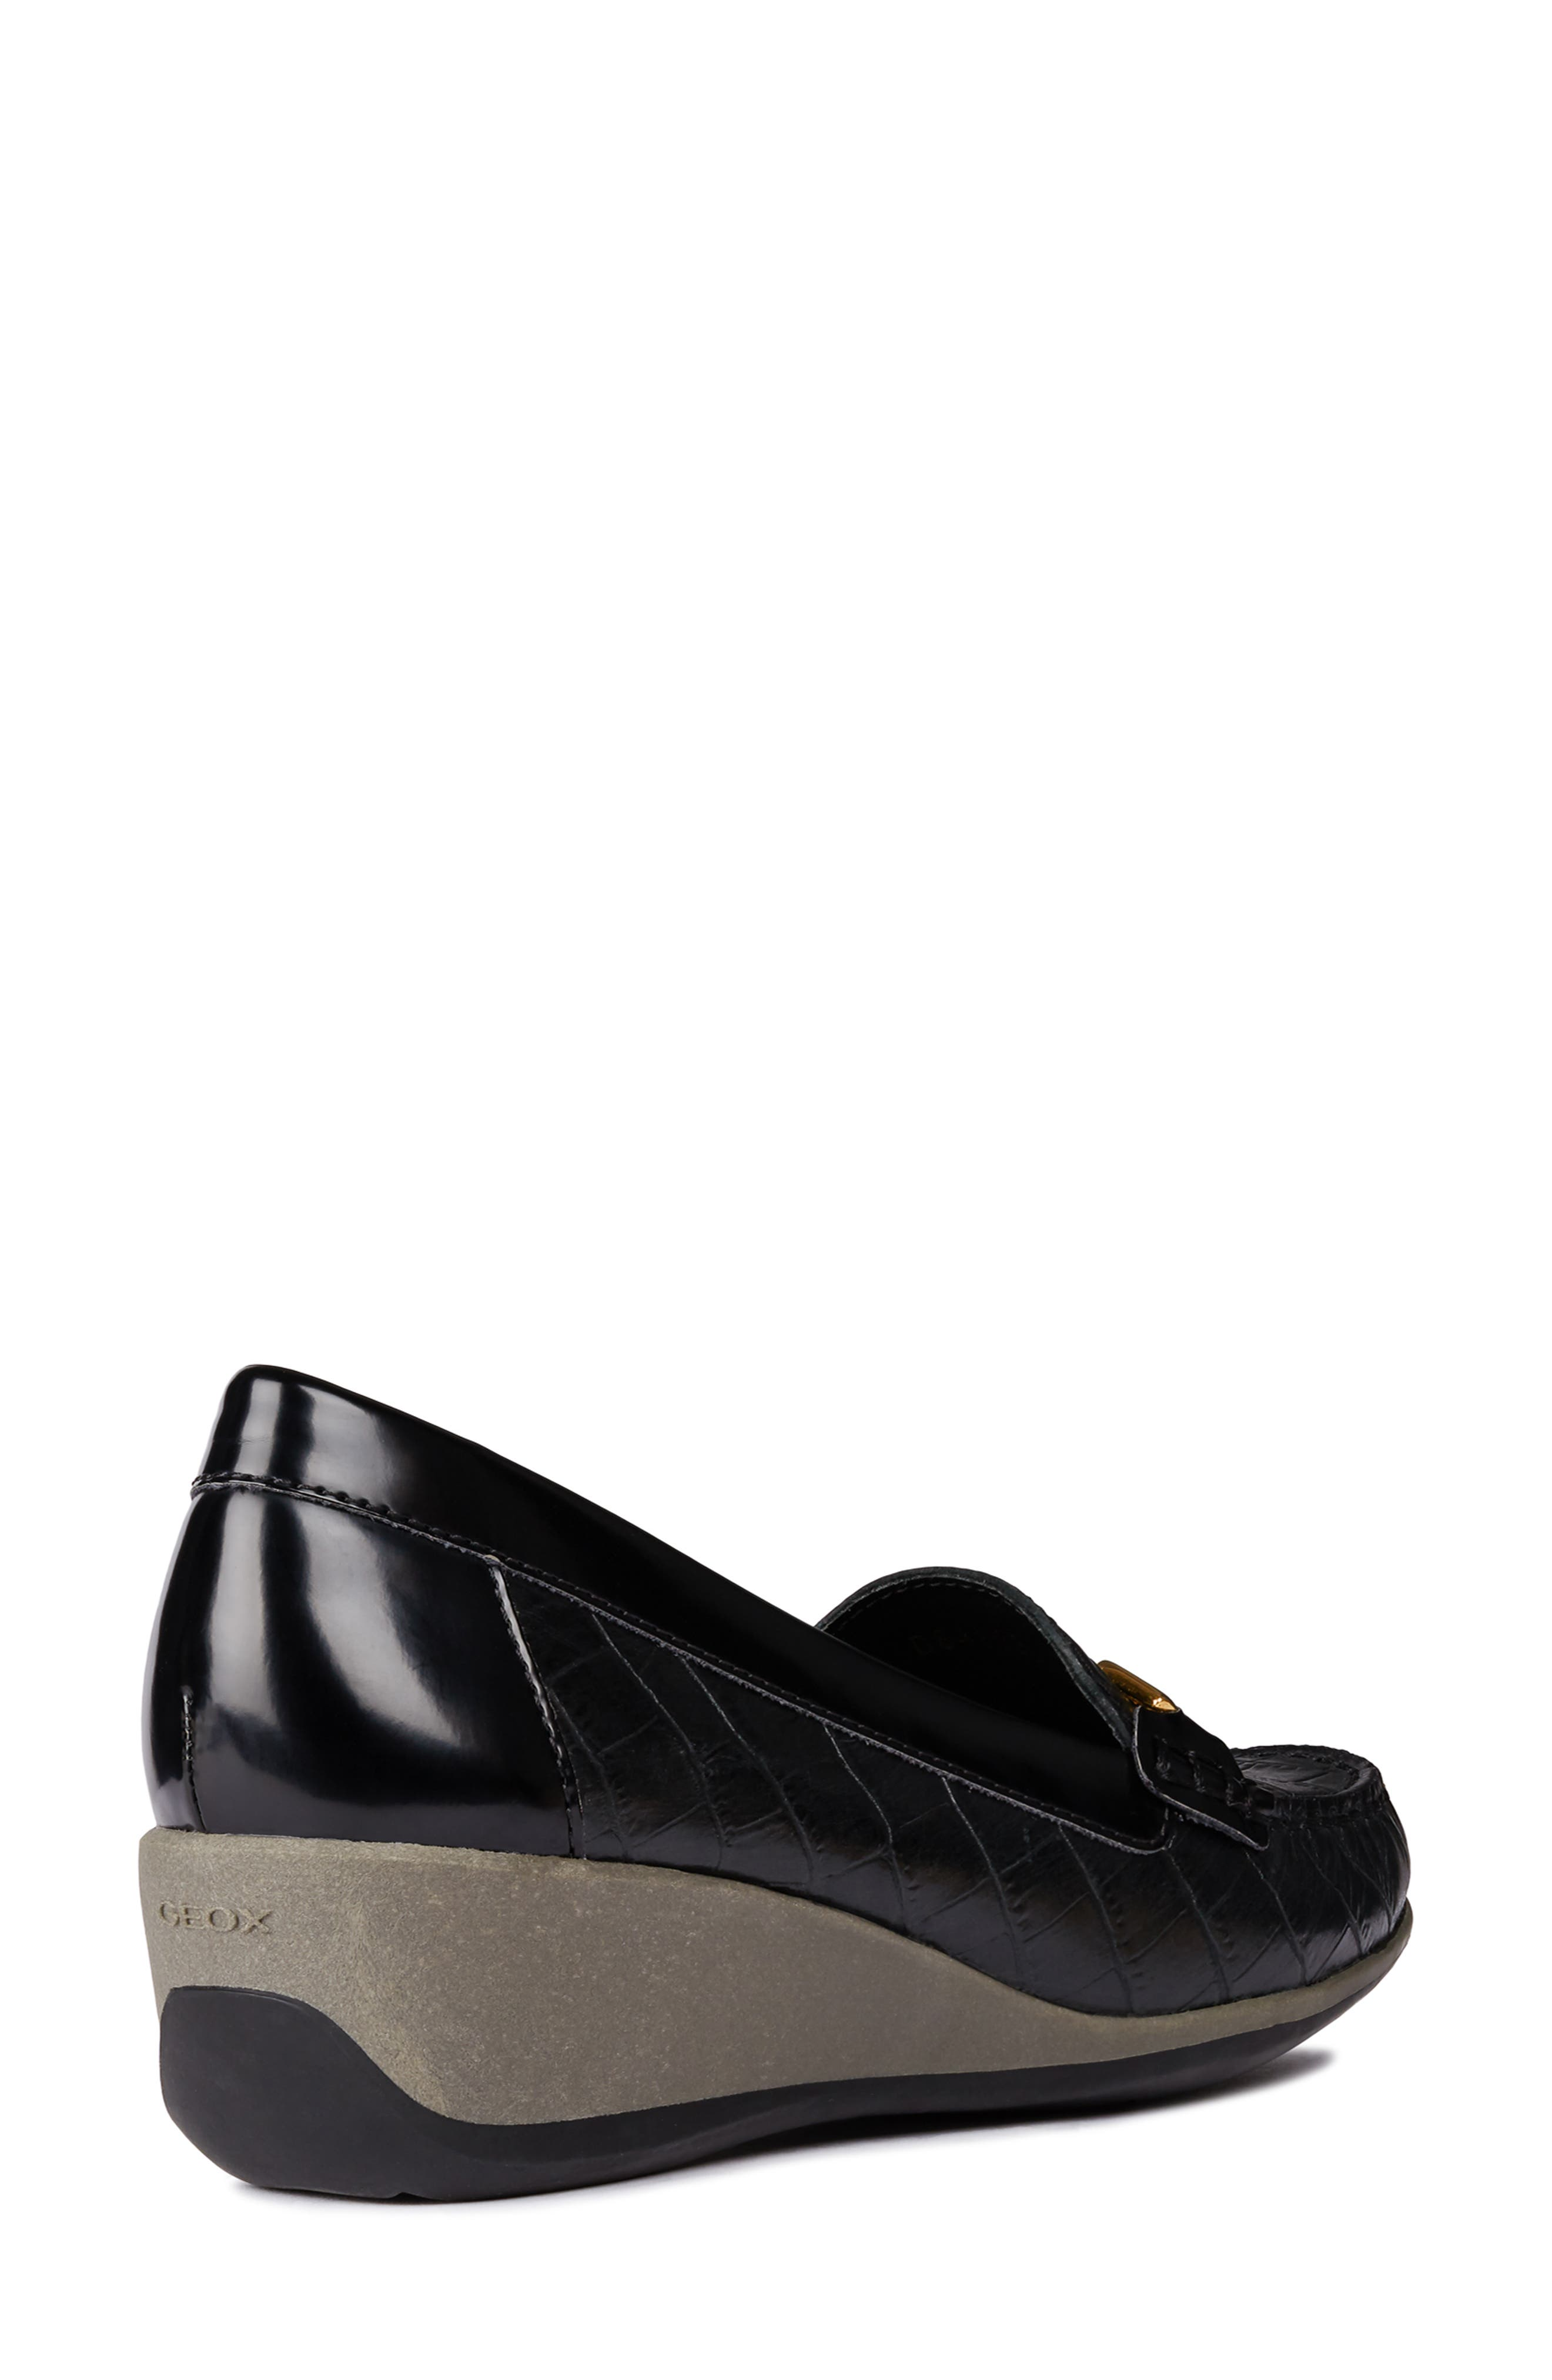 Arethea Loafer Wedge,                             Alternate thumbnail 6, color,                             BLACK LEATHER